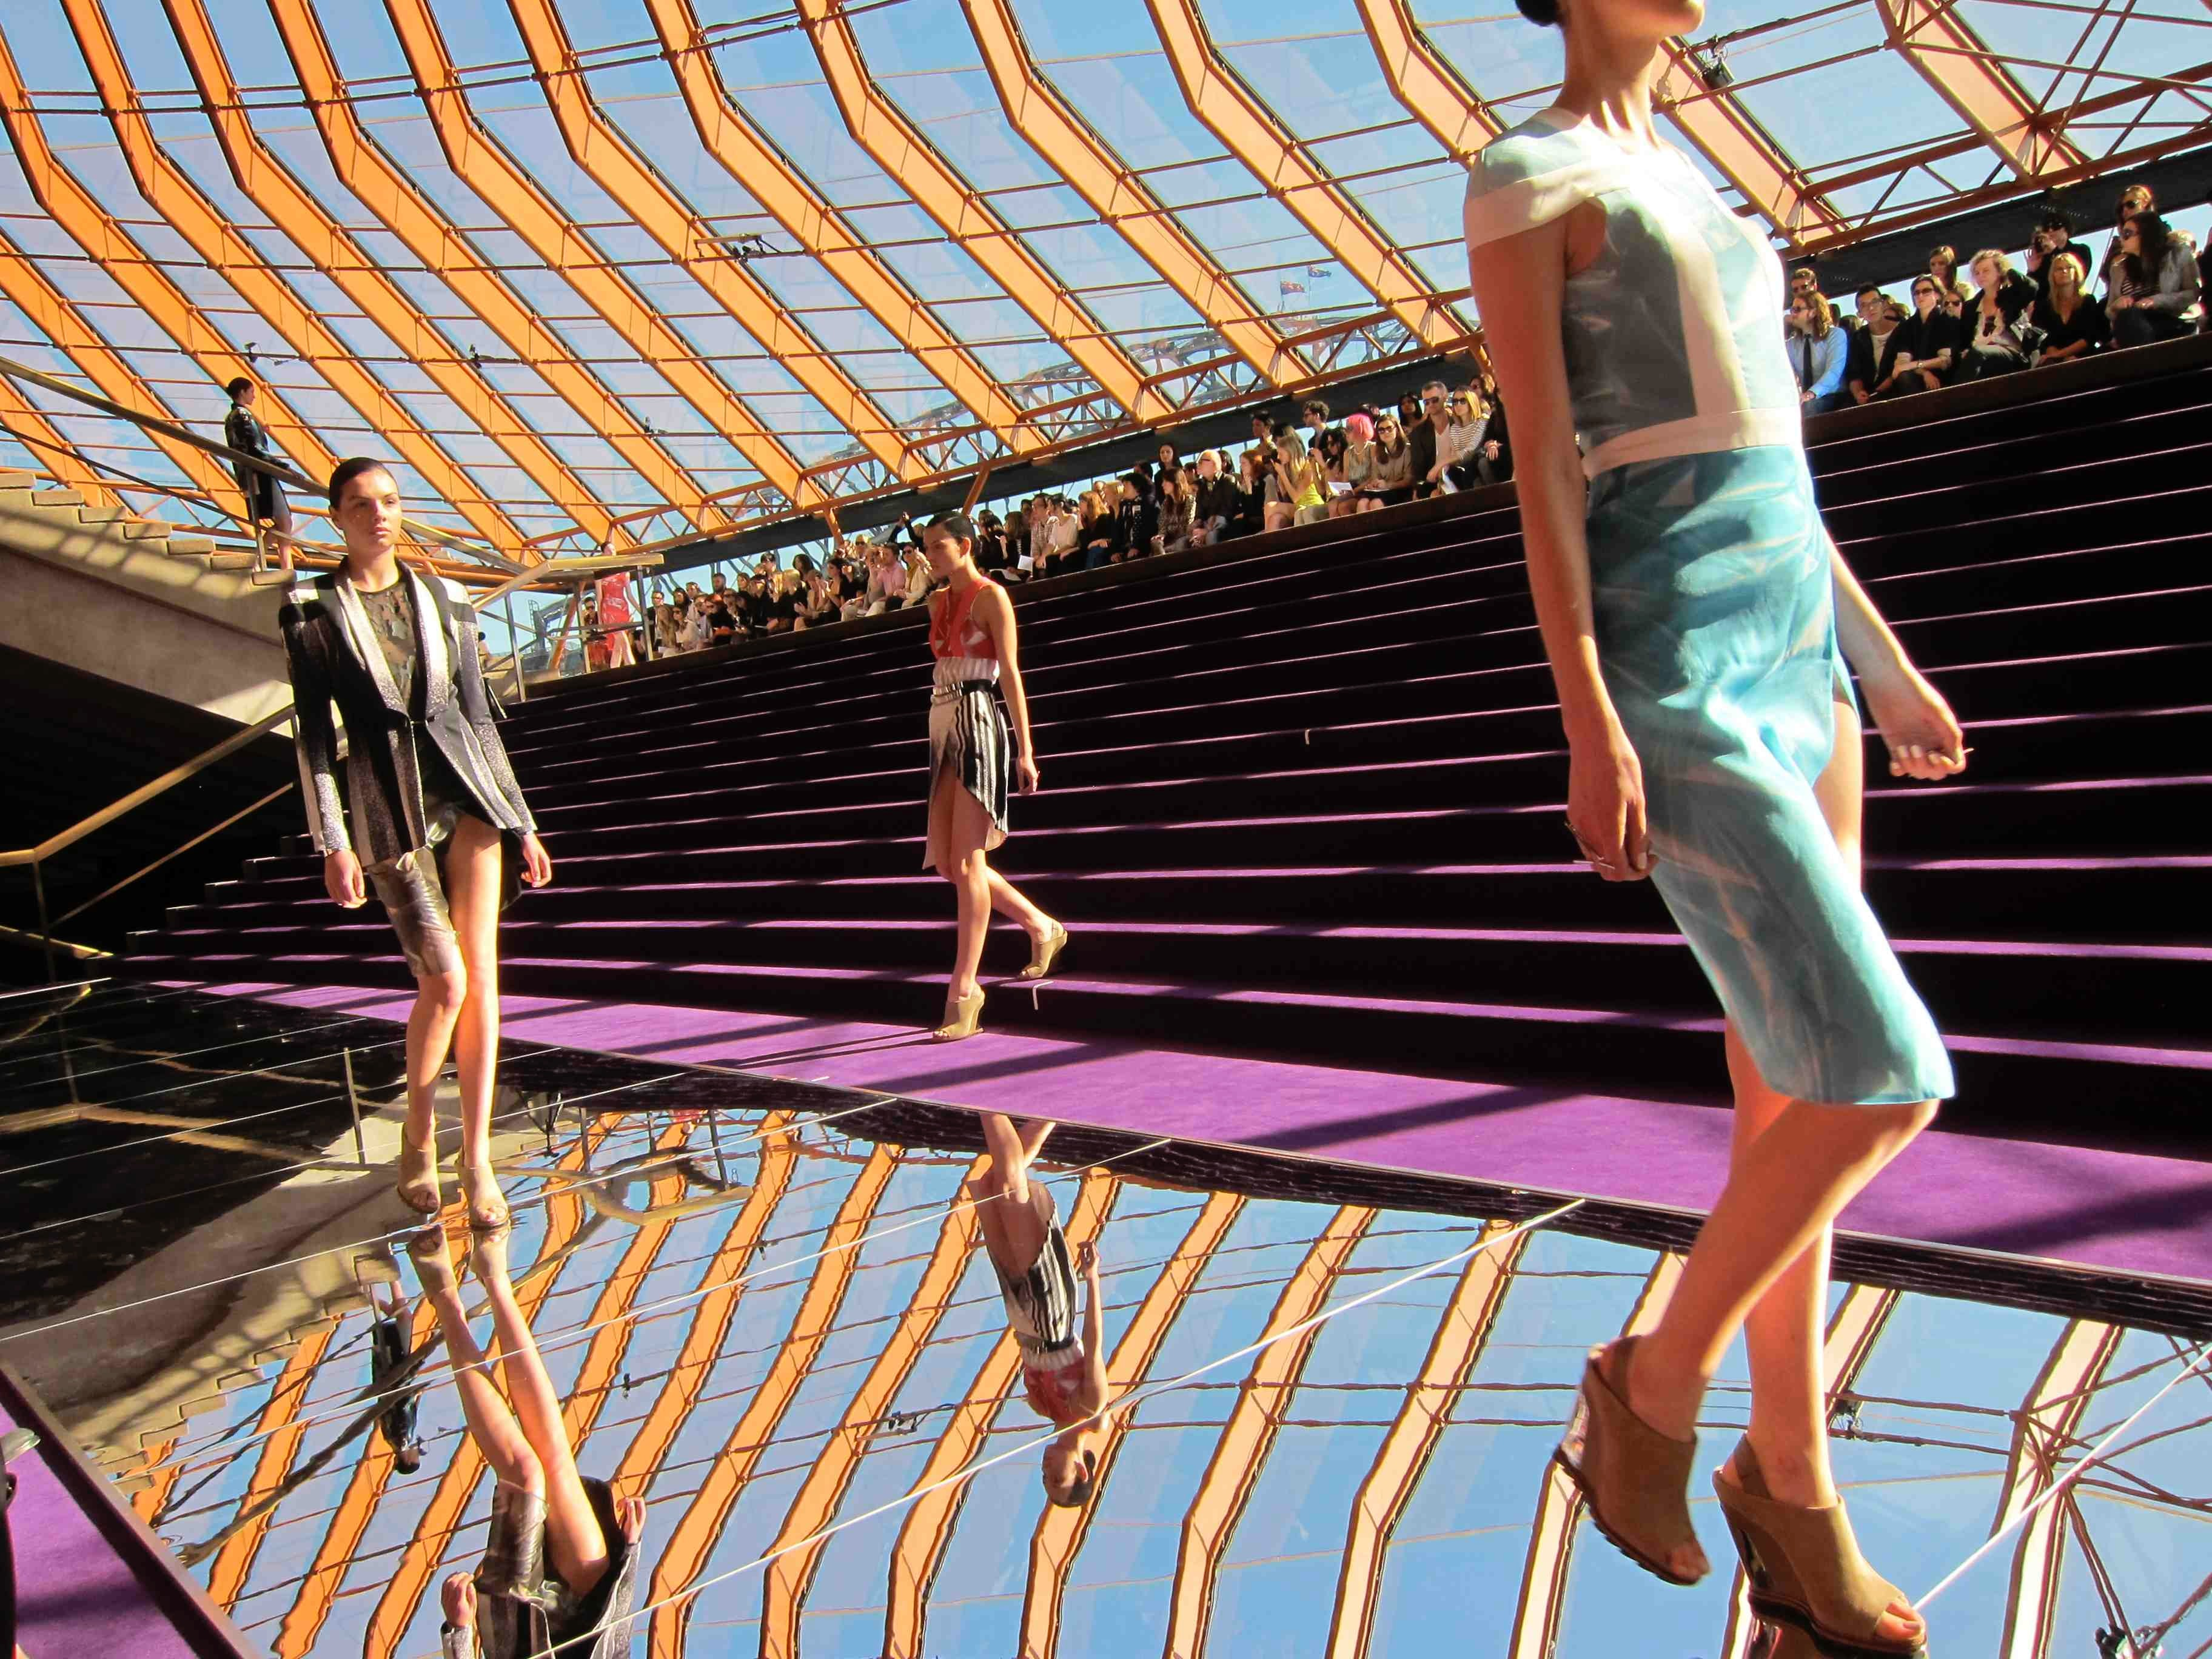 Dion Lee S/S 2011 at Sydney Opera House | Photo: BoF